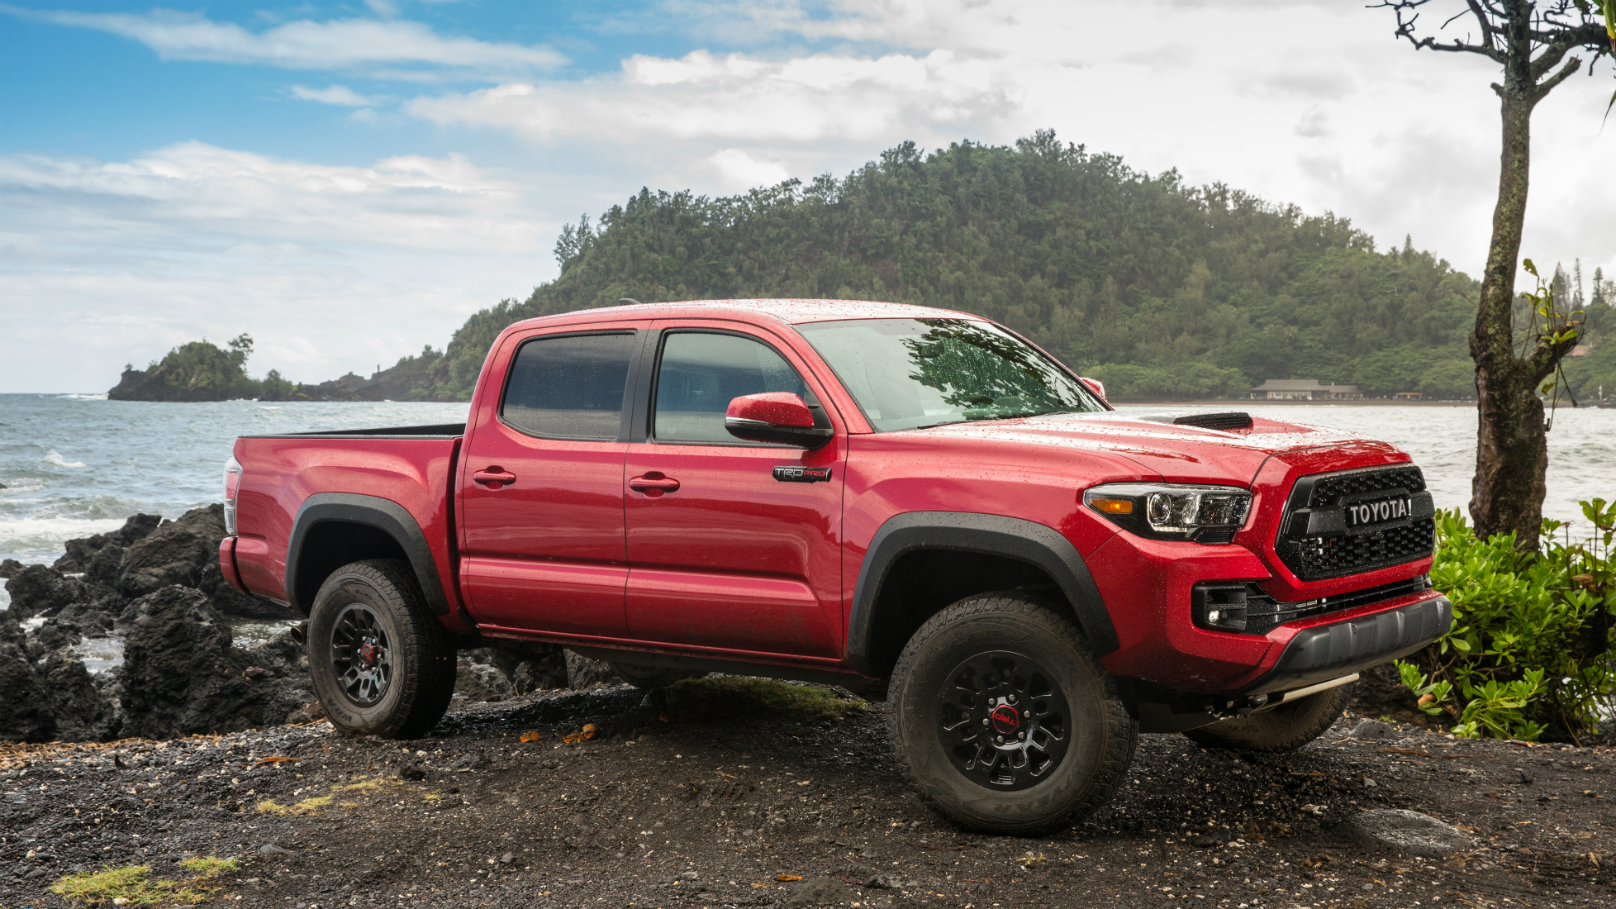 Least Reliable Cars 2017 Toyota Tacoma